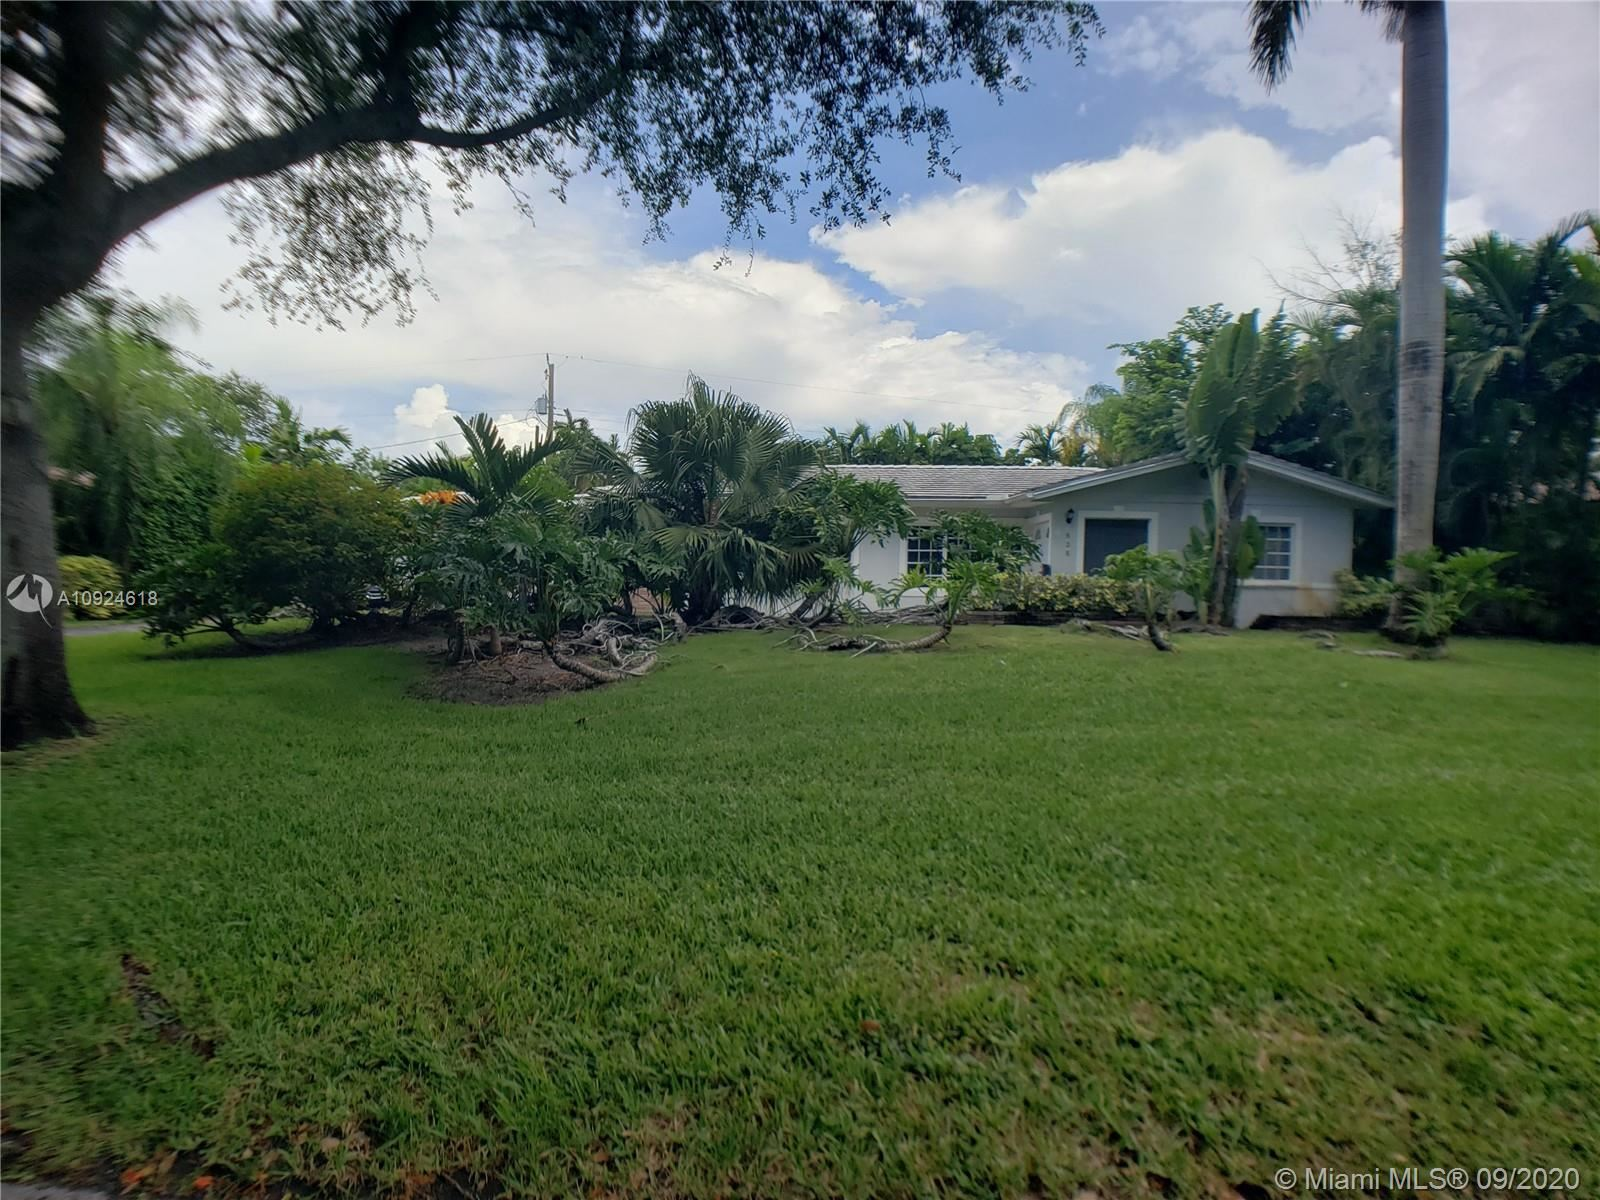 525 Gondoliere Ave, Coral Gables, FL 33143 - #: A10924618